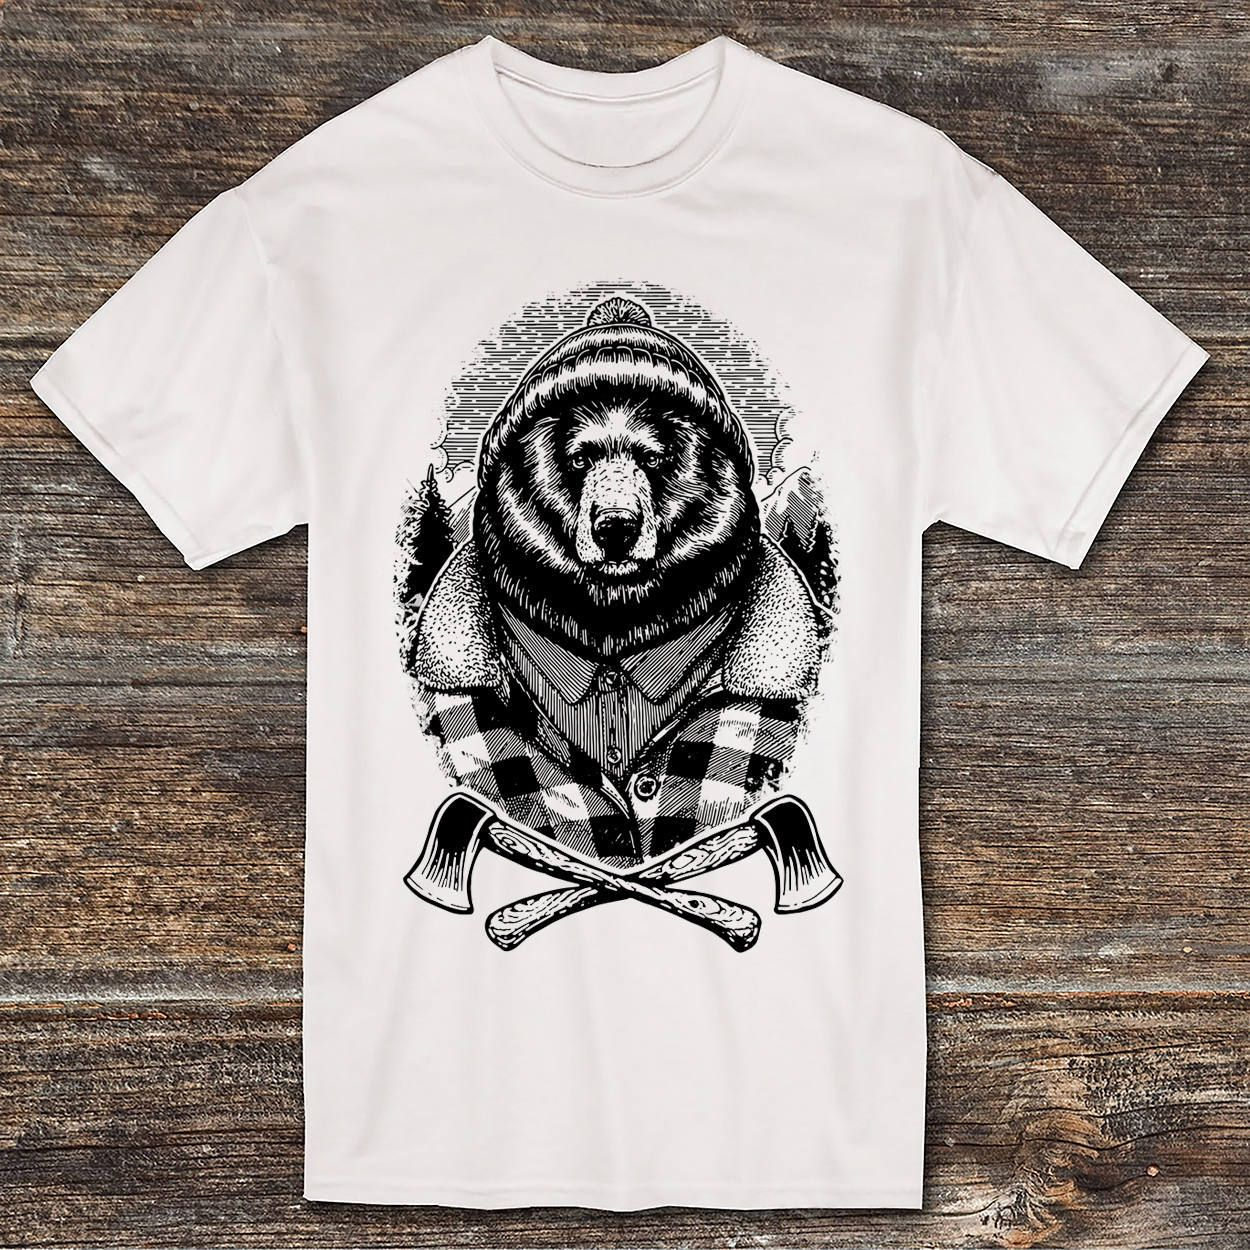 Grizzly bear lumber jack bear t shirt bear lumber jack t shirt grizzly bear lumber jack bear t shirt bear lumber jack t shirt lumber jack publicscrutiny Image collections